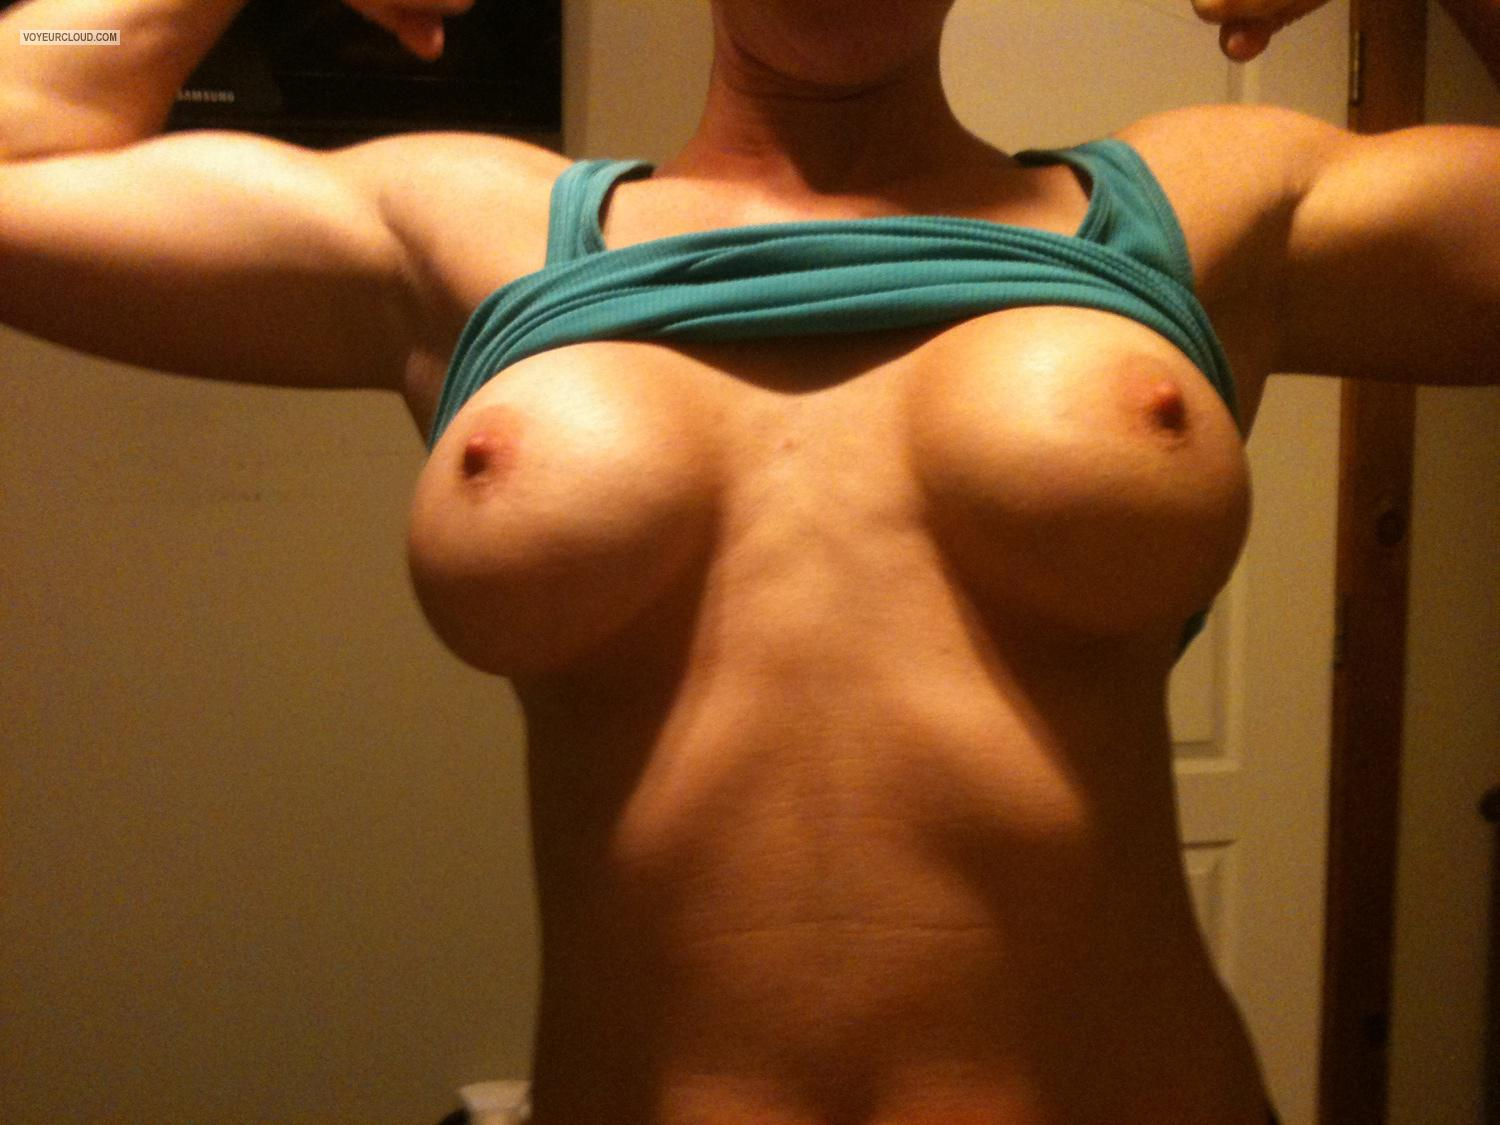 Tit Flash: Big Tits By IPhone - Kat from United States